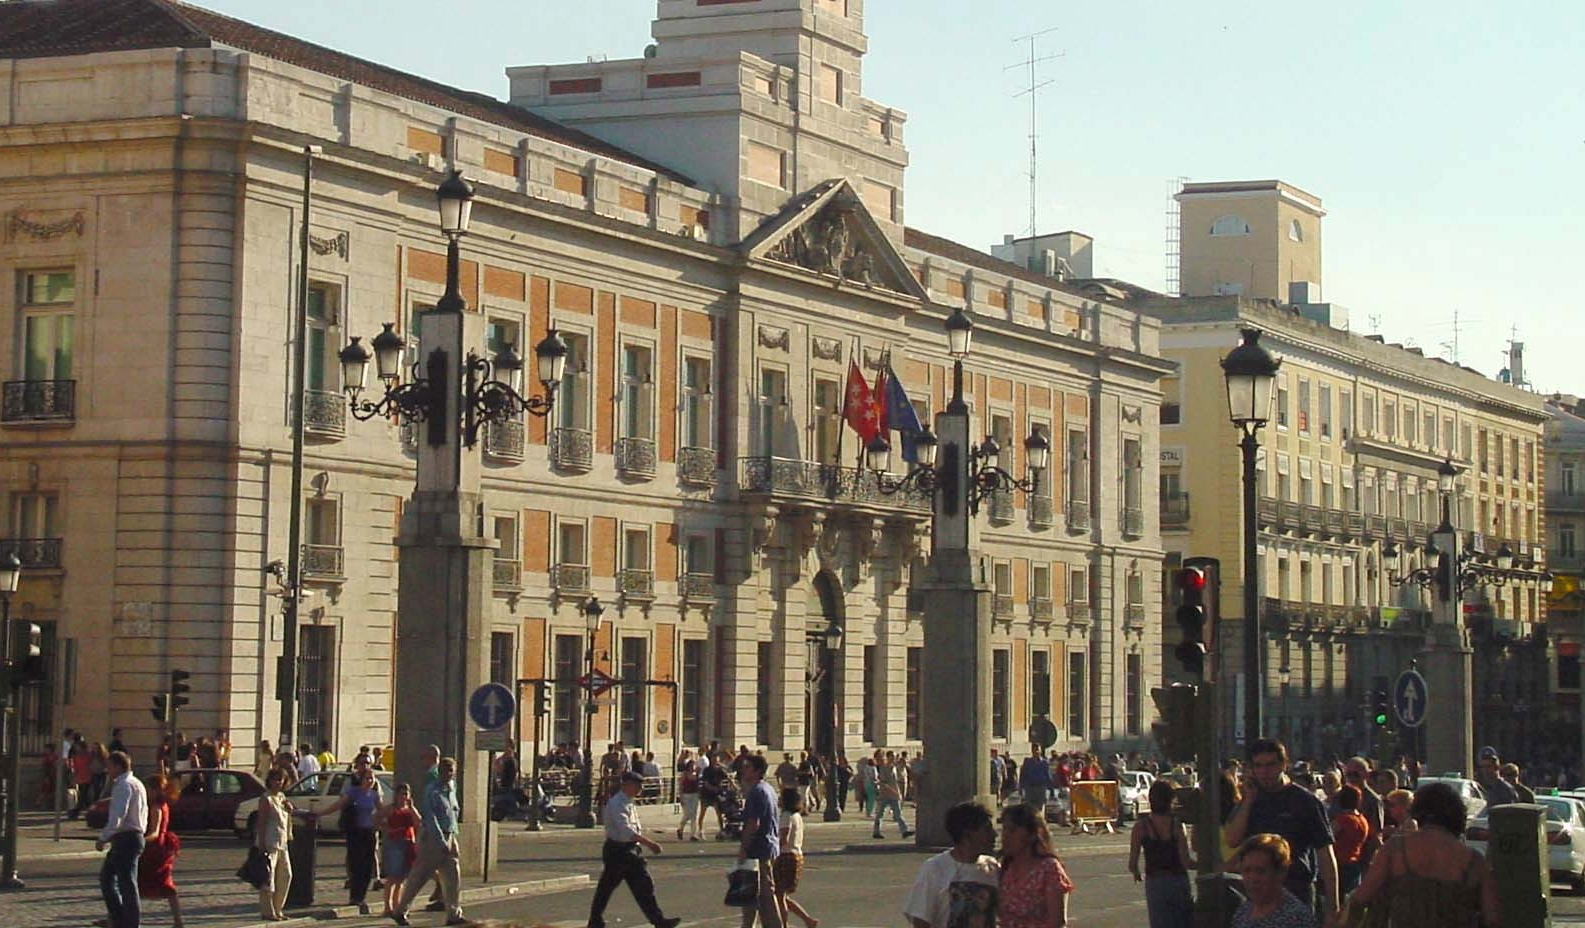 The 12 lucky grapes of new year in madrid shmadrid Uvas puerta del sol